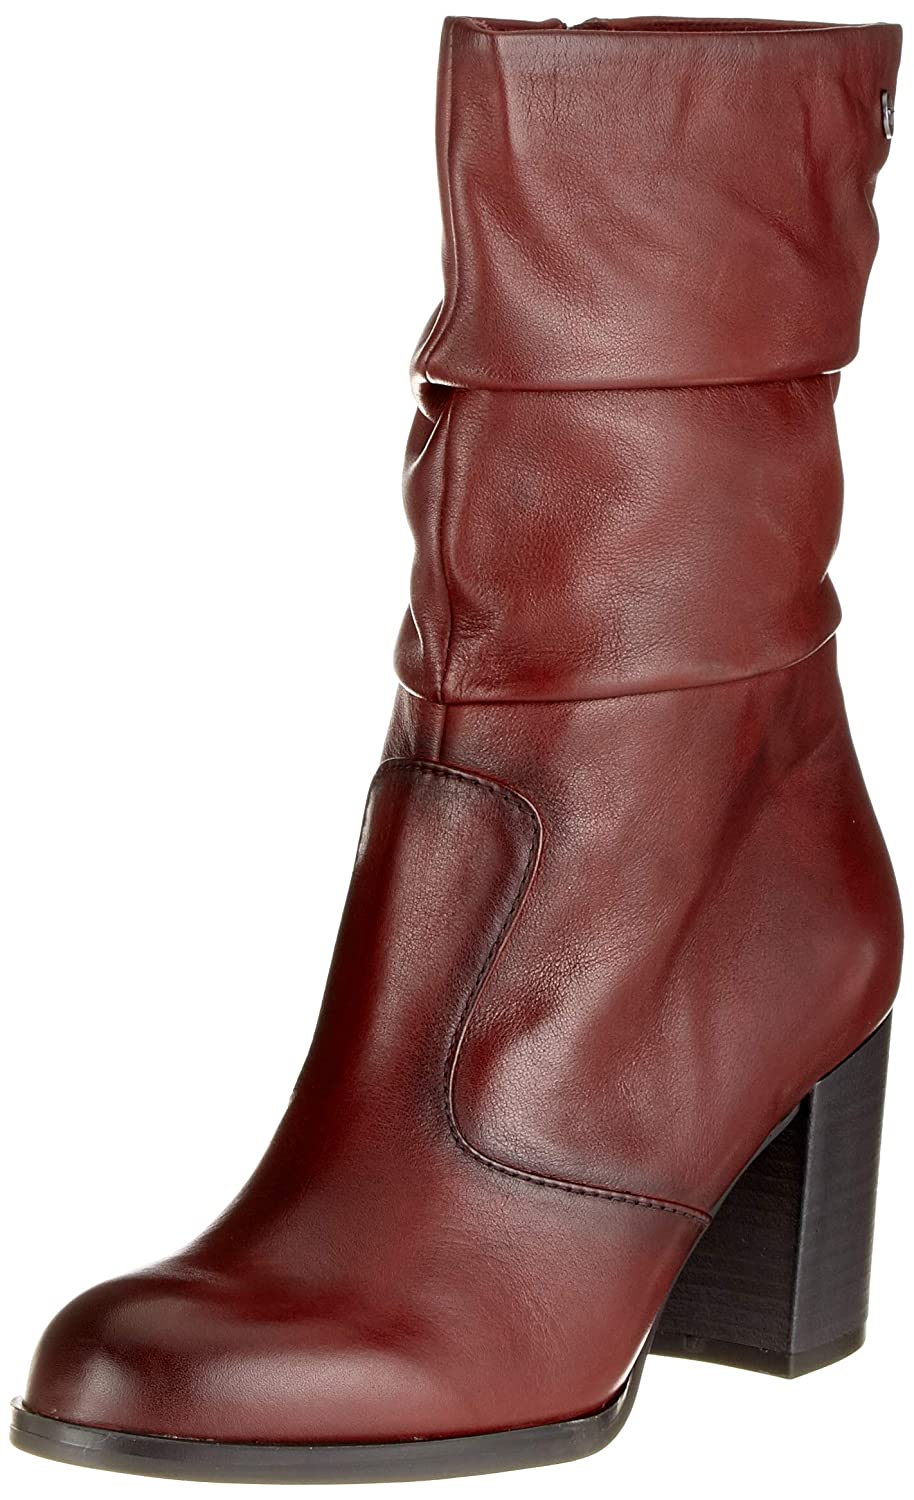 Tamaris 25057-31, 25057-31, Botines Femme Rouge Tamaris (Bordeaux Rouge 549) 14231ef - gis9ma7le.space